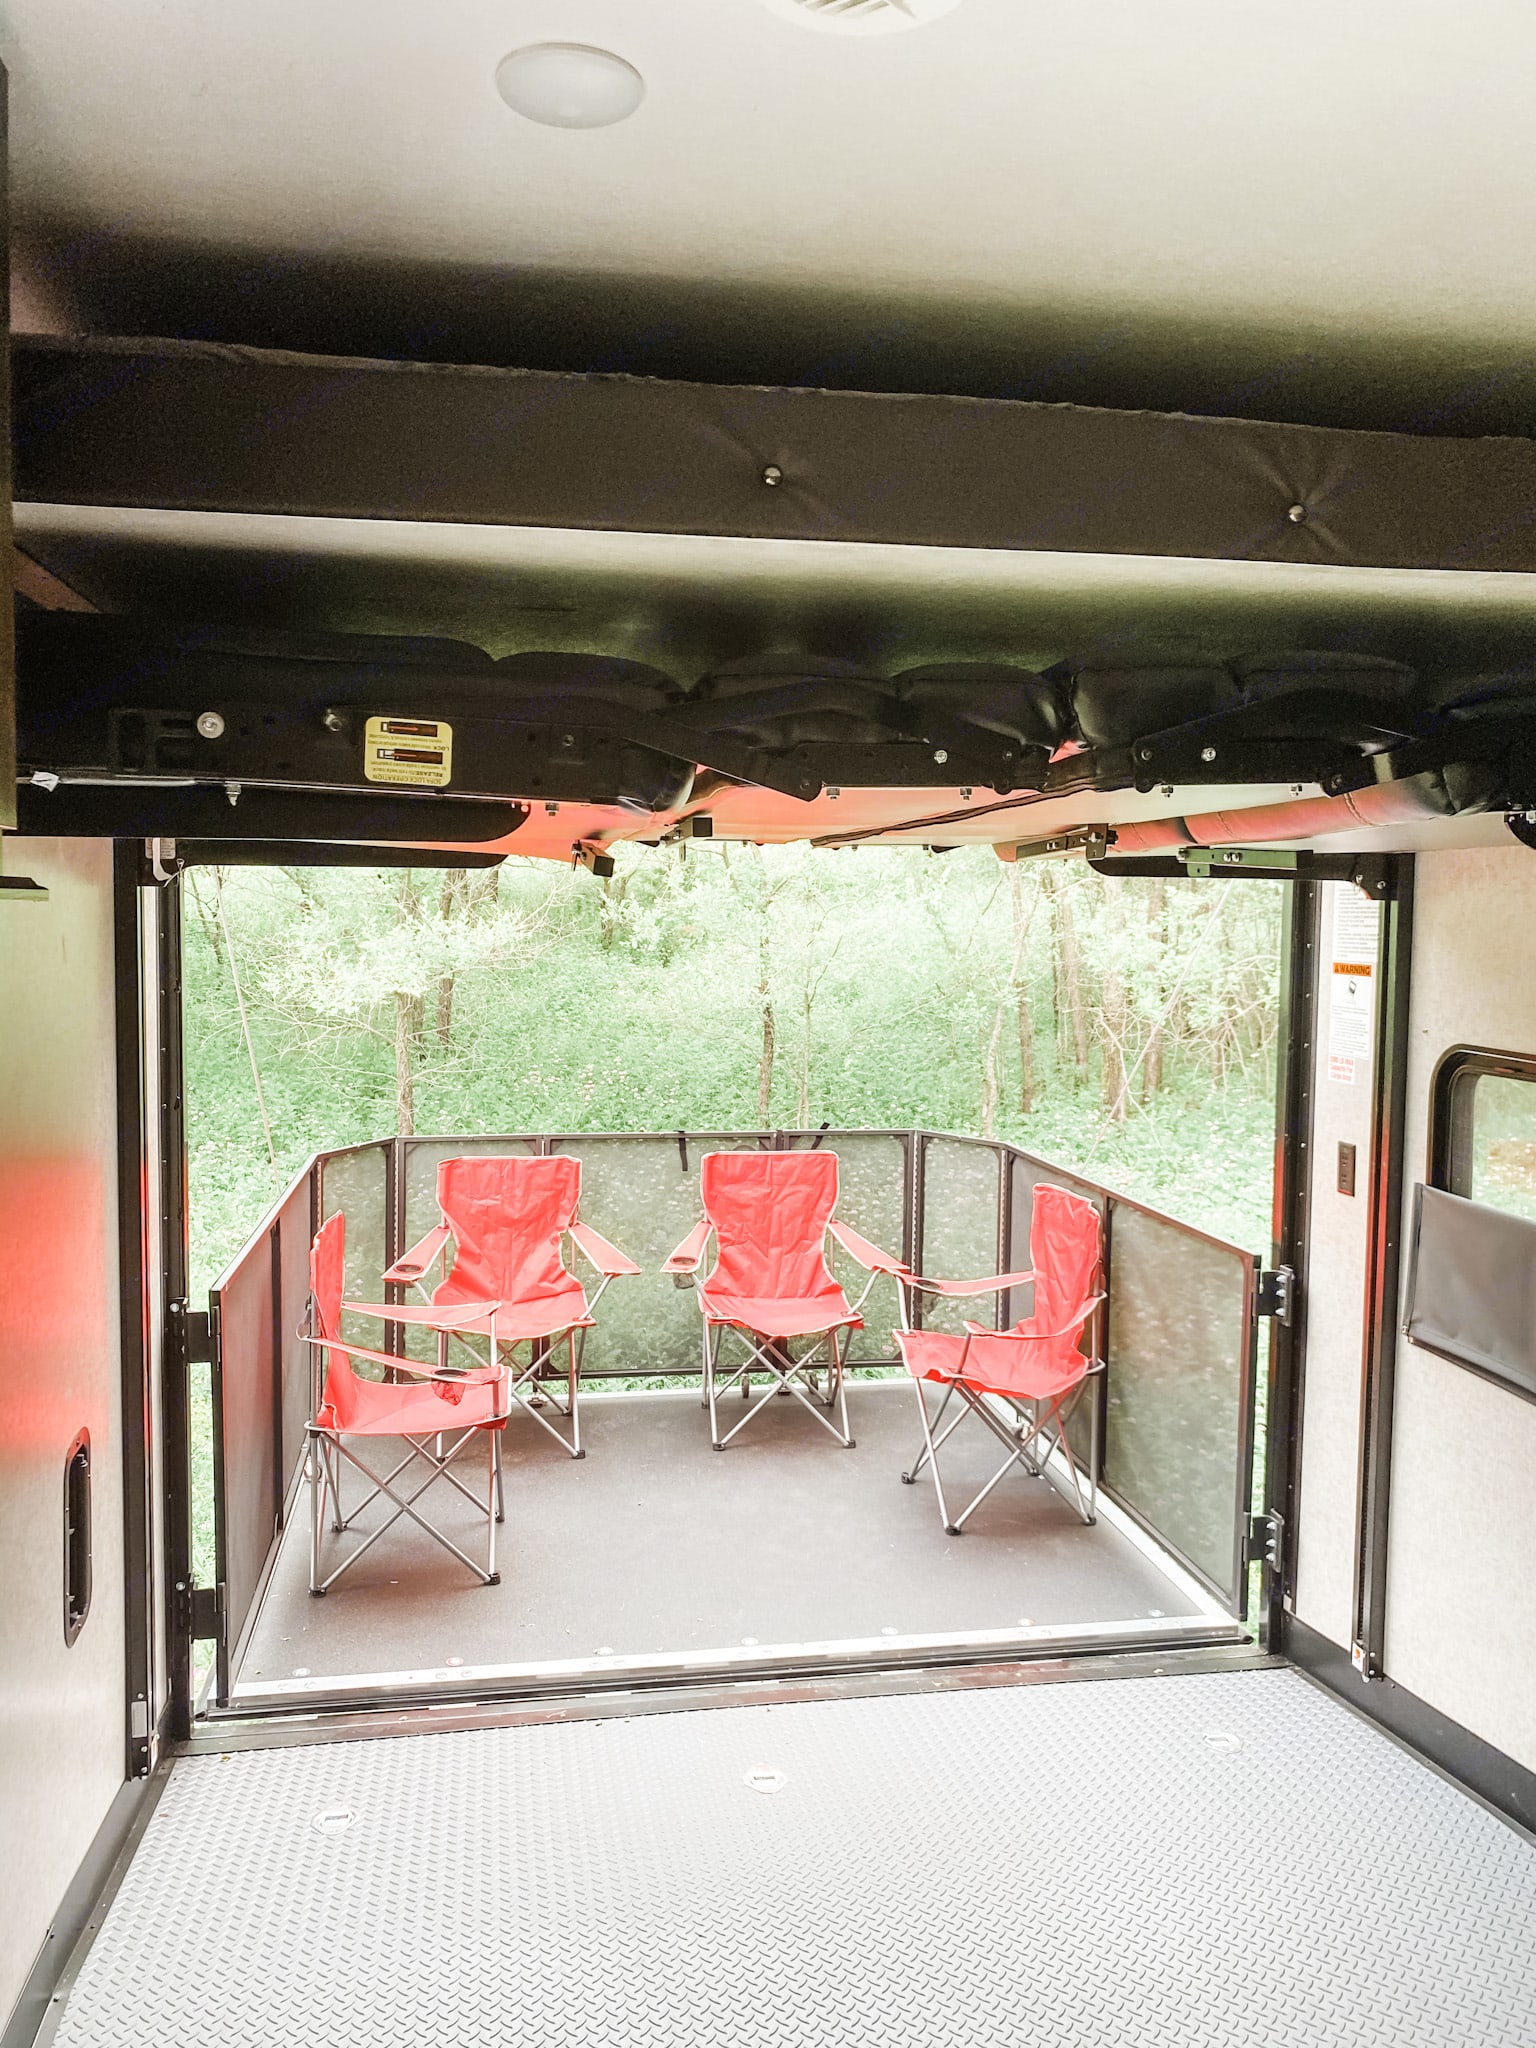 View with both top bunk/bottom bunk(dining benches) all the way up to fit toys while traveling. Benches can also lay flat against the wall.. Forest River Other 2020